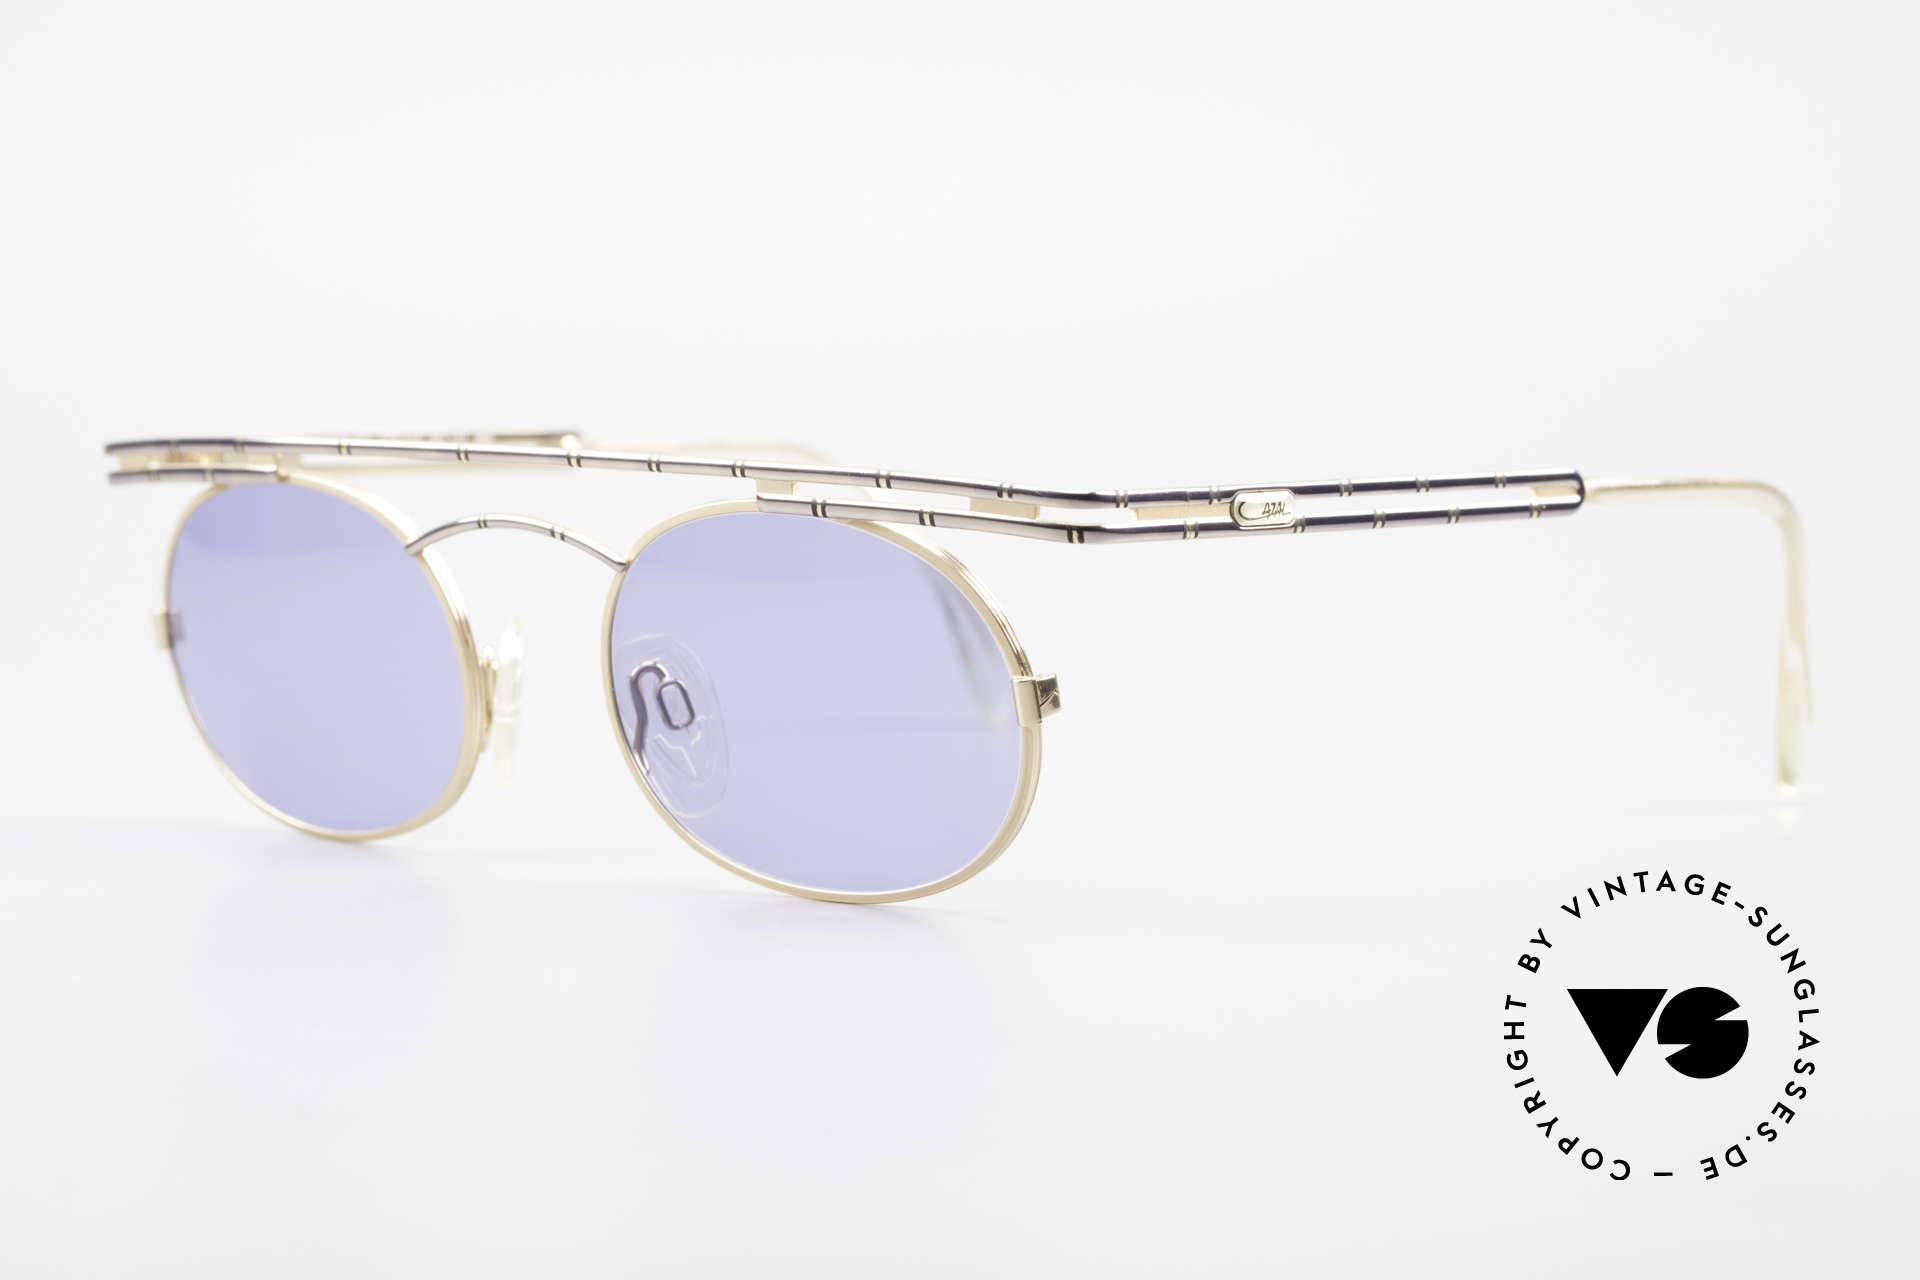 Cazal 761 Old 90's Original Sunglasses, top-notch craftsmanship (frame 'made in Germany'), Made for Men and Women